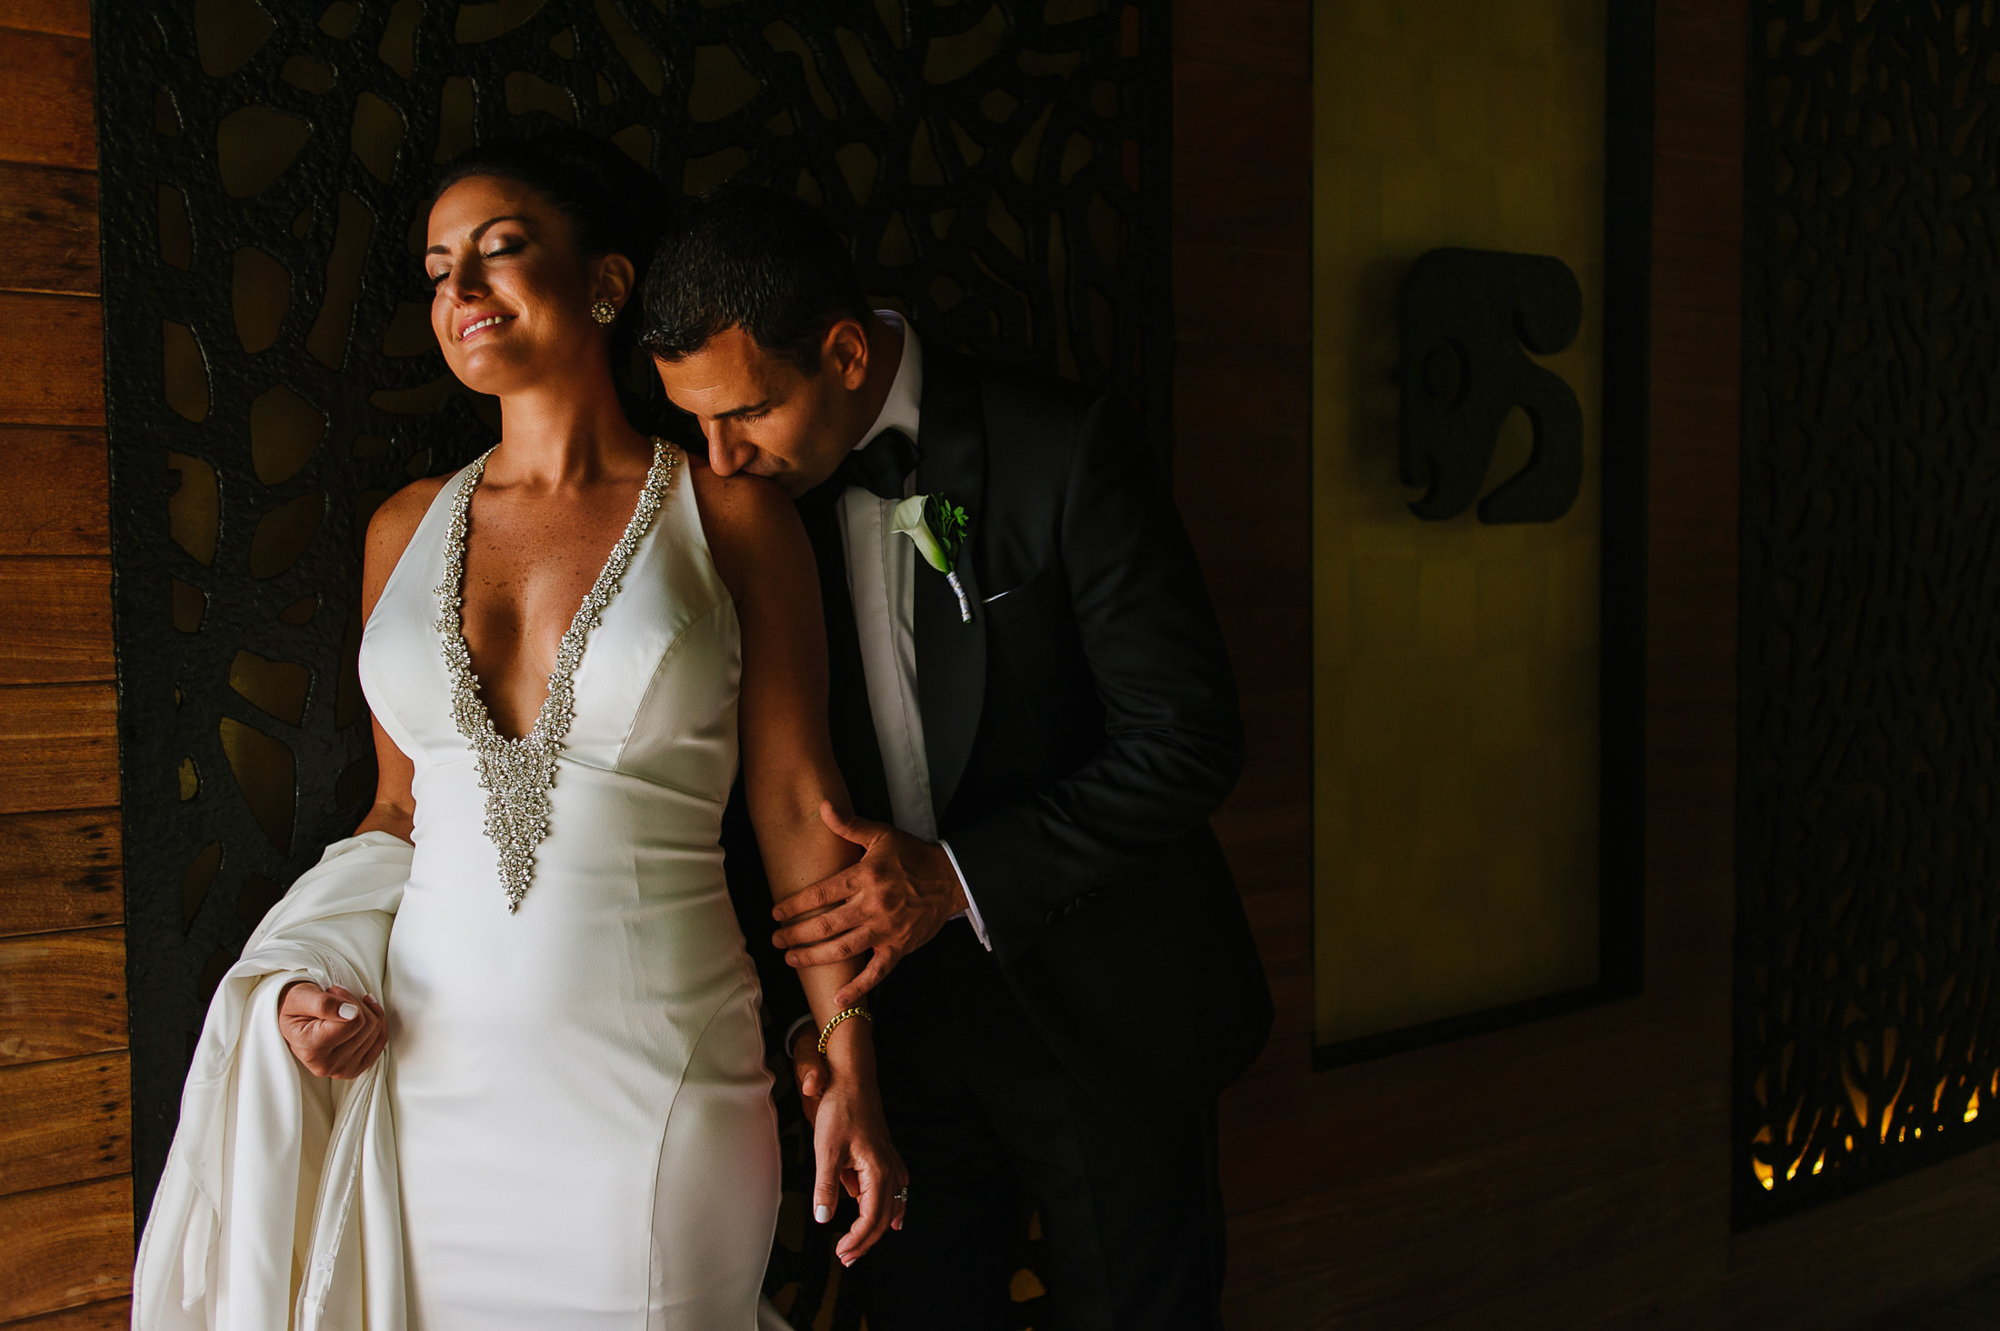 Groom kisses bride in plunging neckline satin gown, by Citlalli Rico